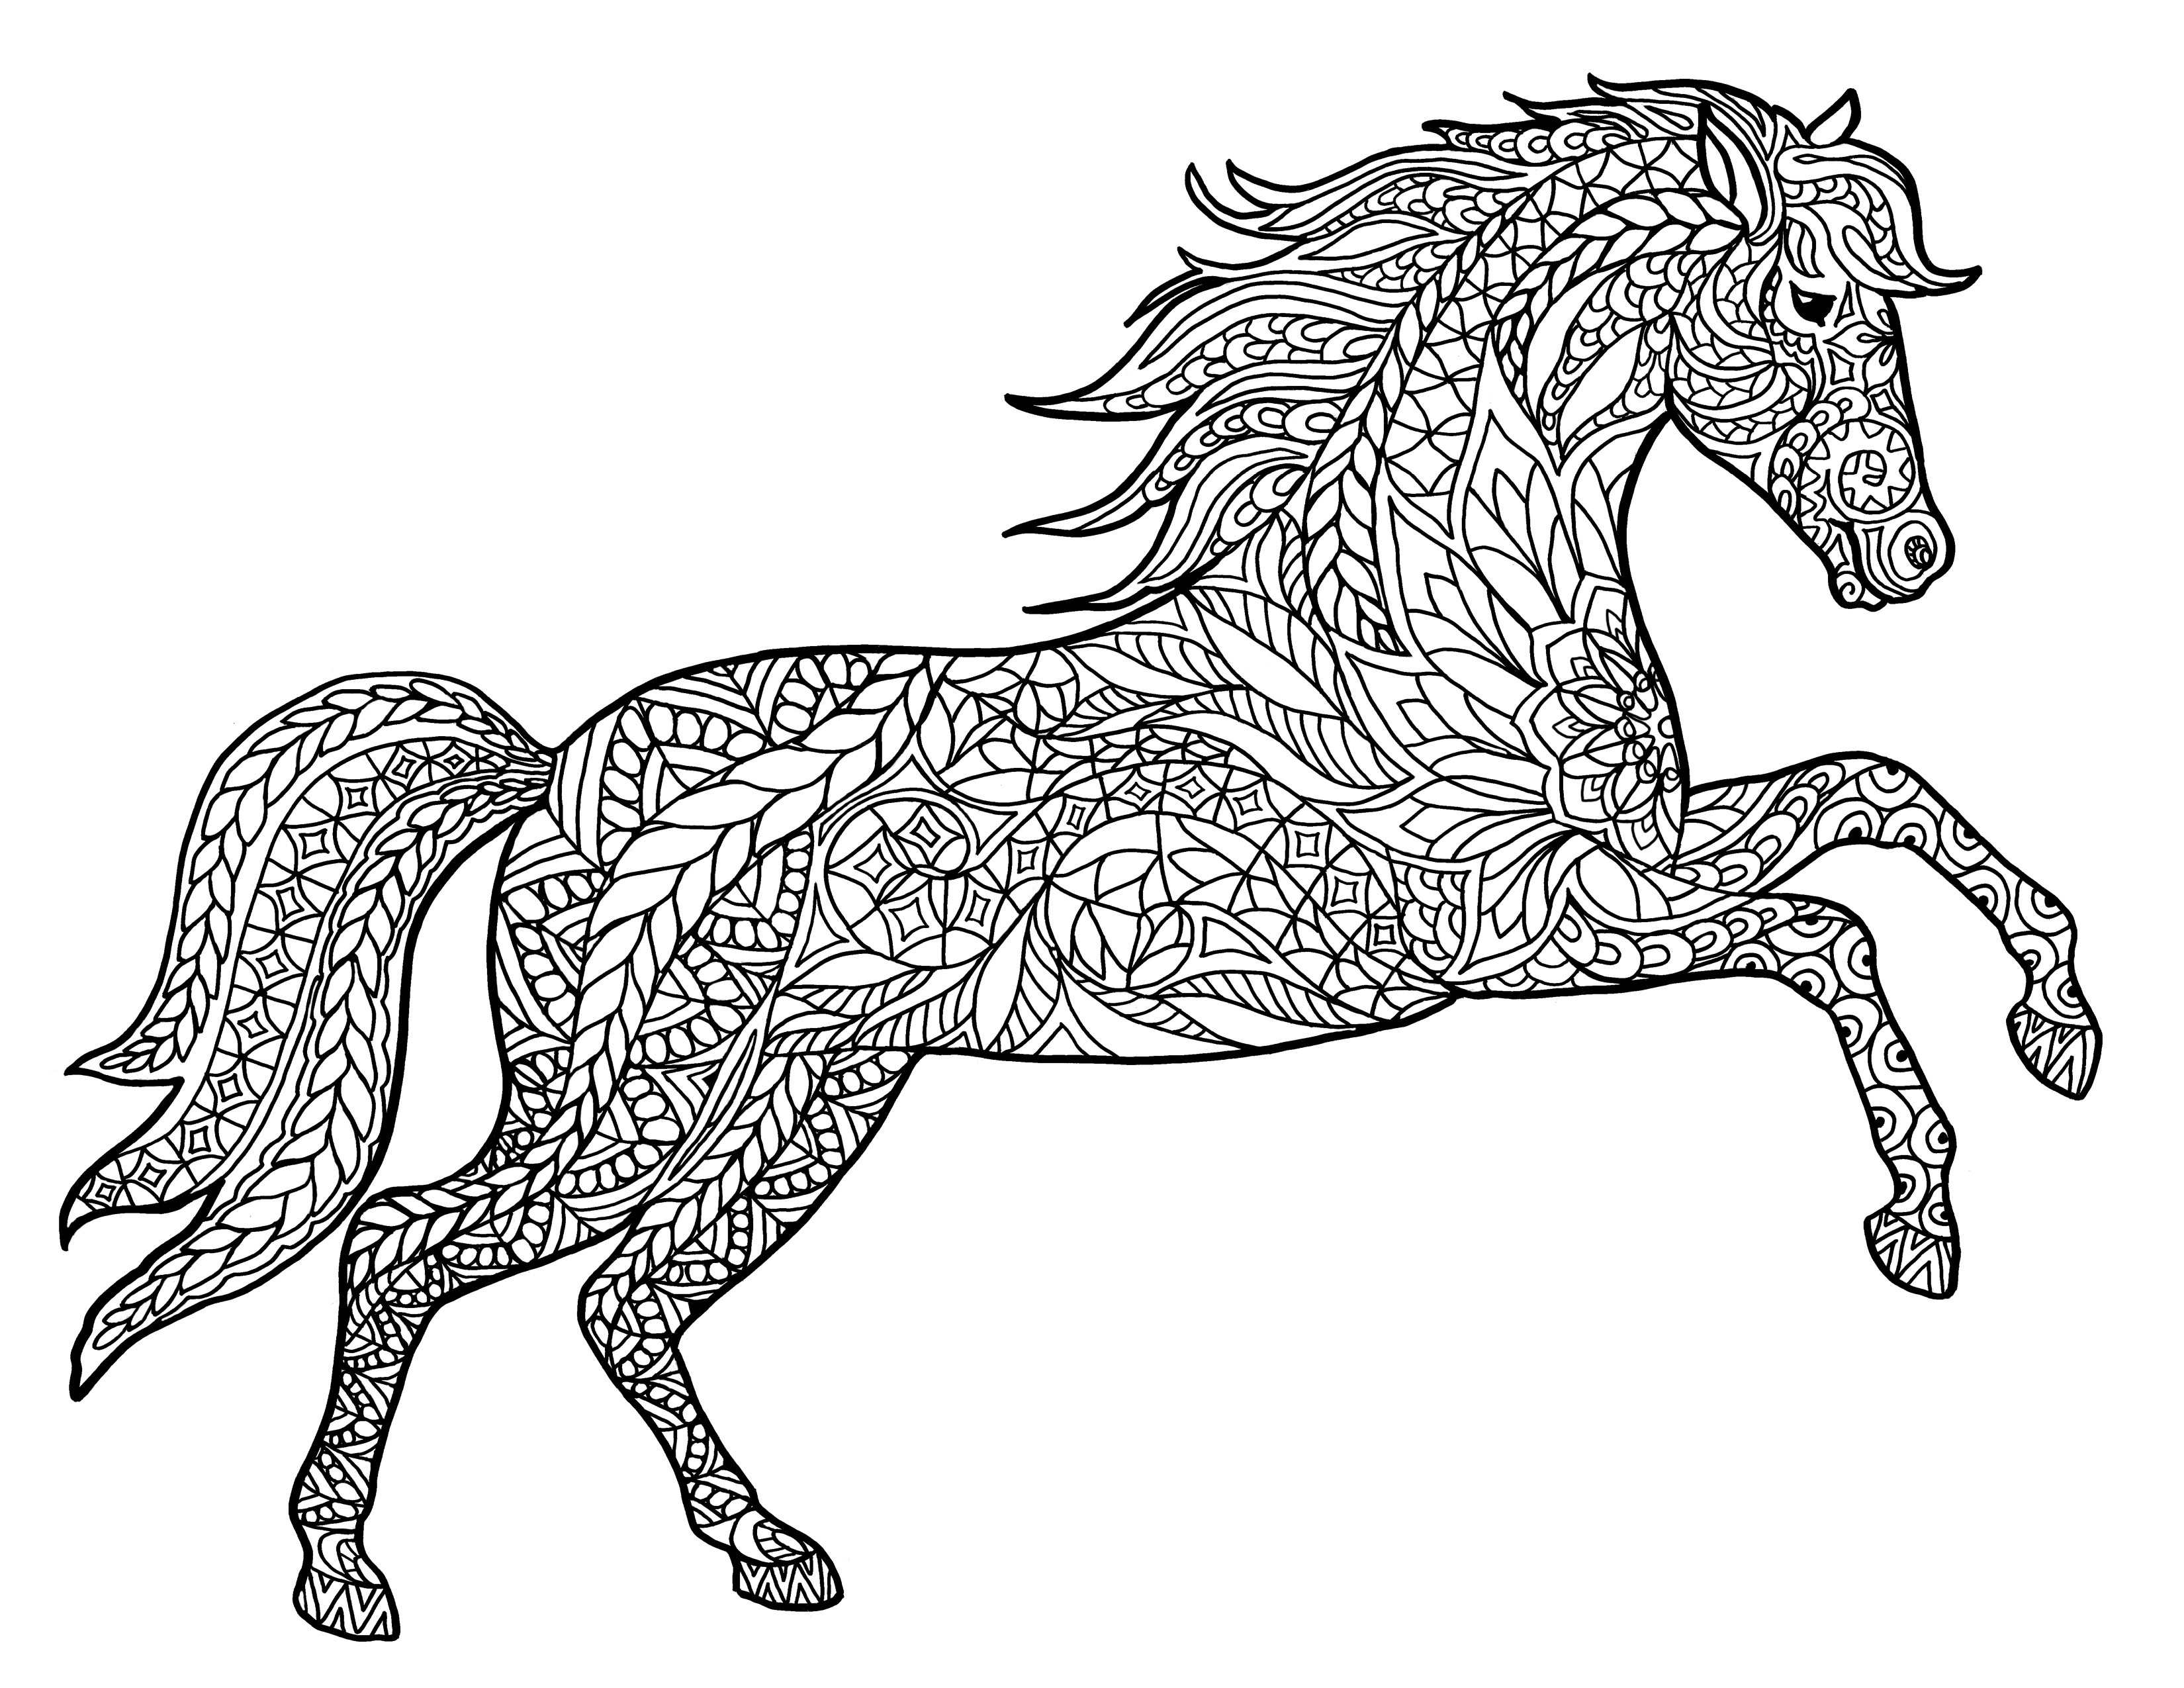 Adult Coloring Book Horse  Animal Coloring Pages for Adults Best Coloring Pages For